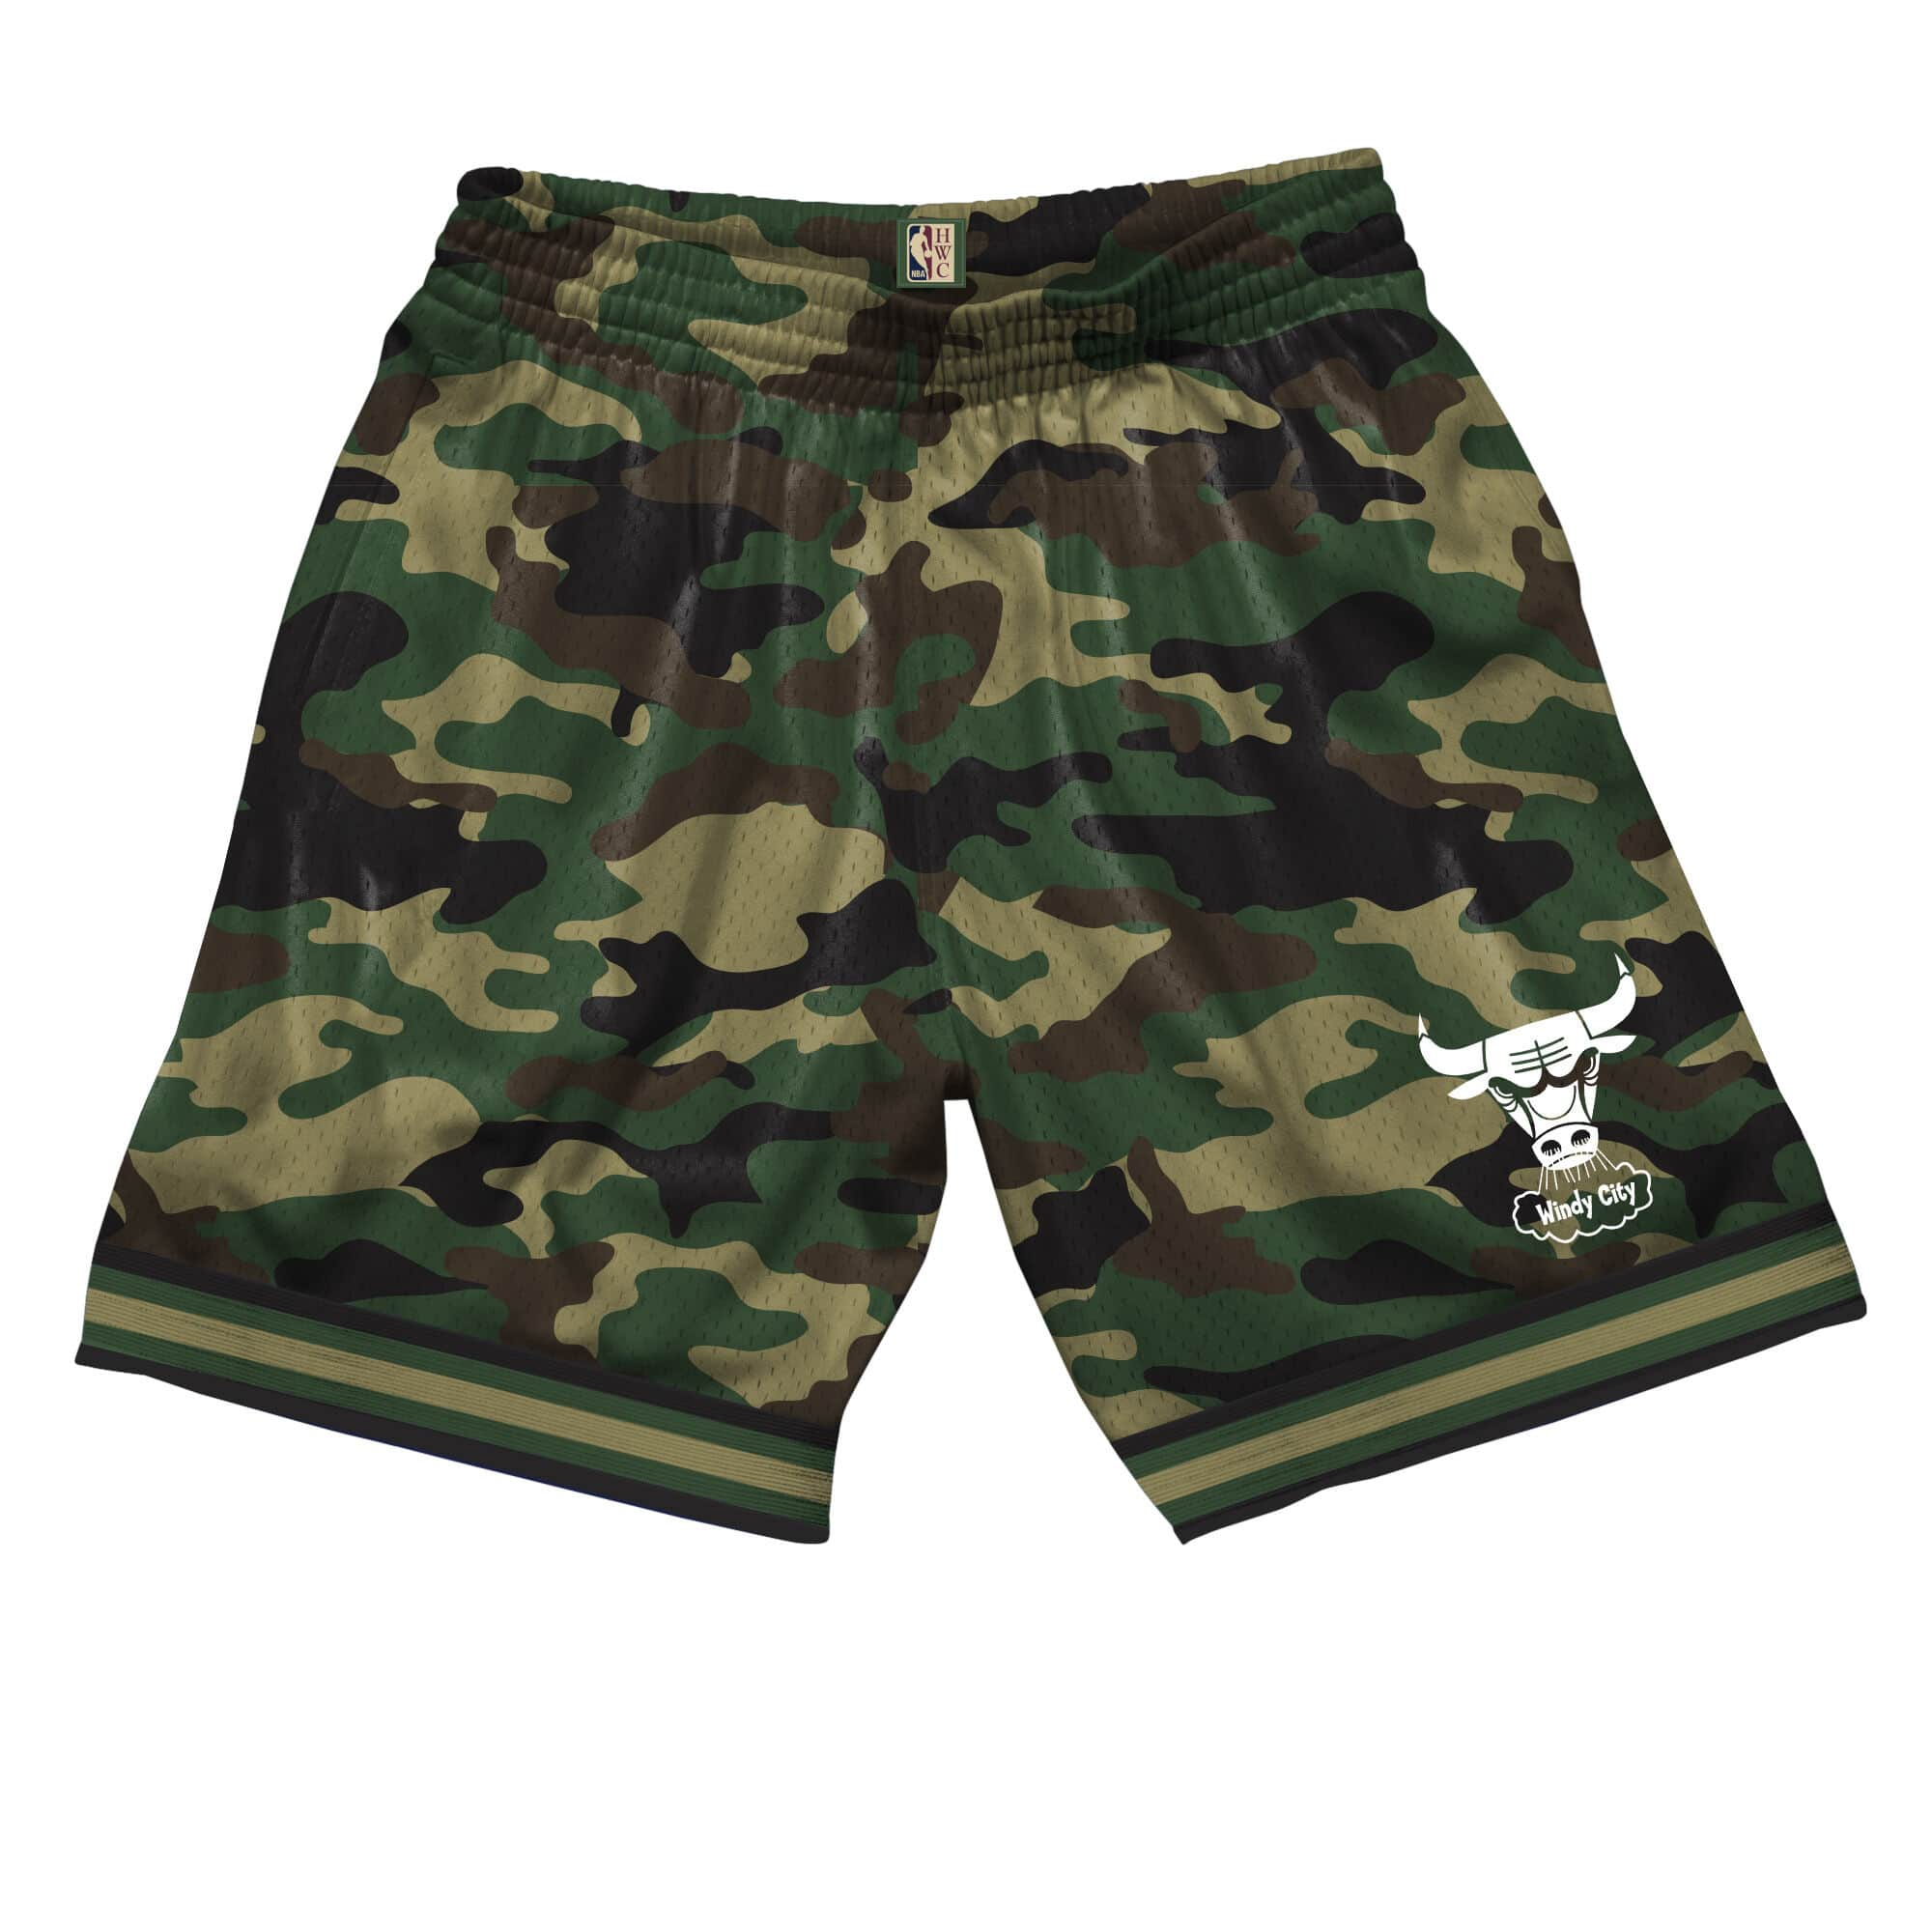 Camo Mesh Shorts Chicago Bulls